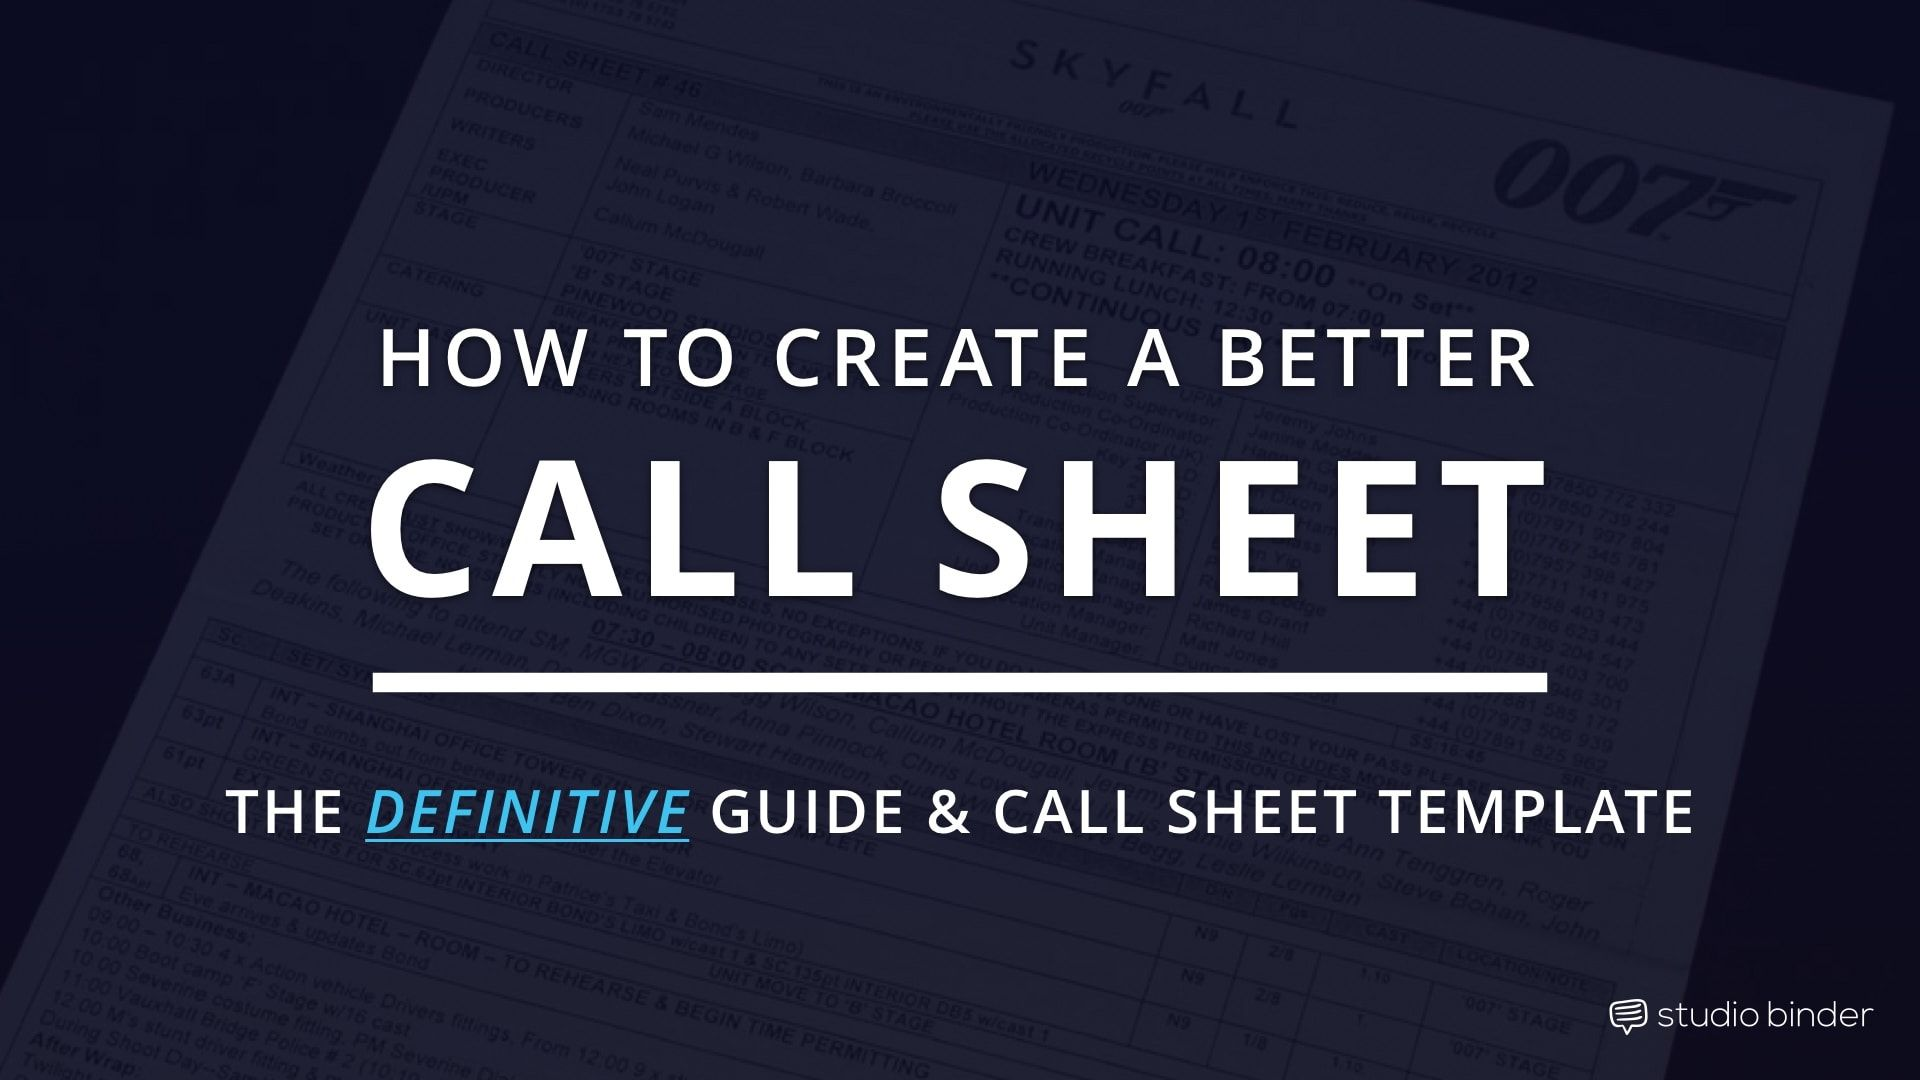 Call Sheet Template Docstoc Docs | Templates | Pinterest | Template, Film  Industry And Thrillers